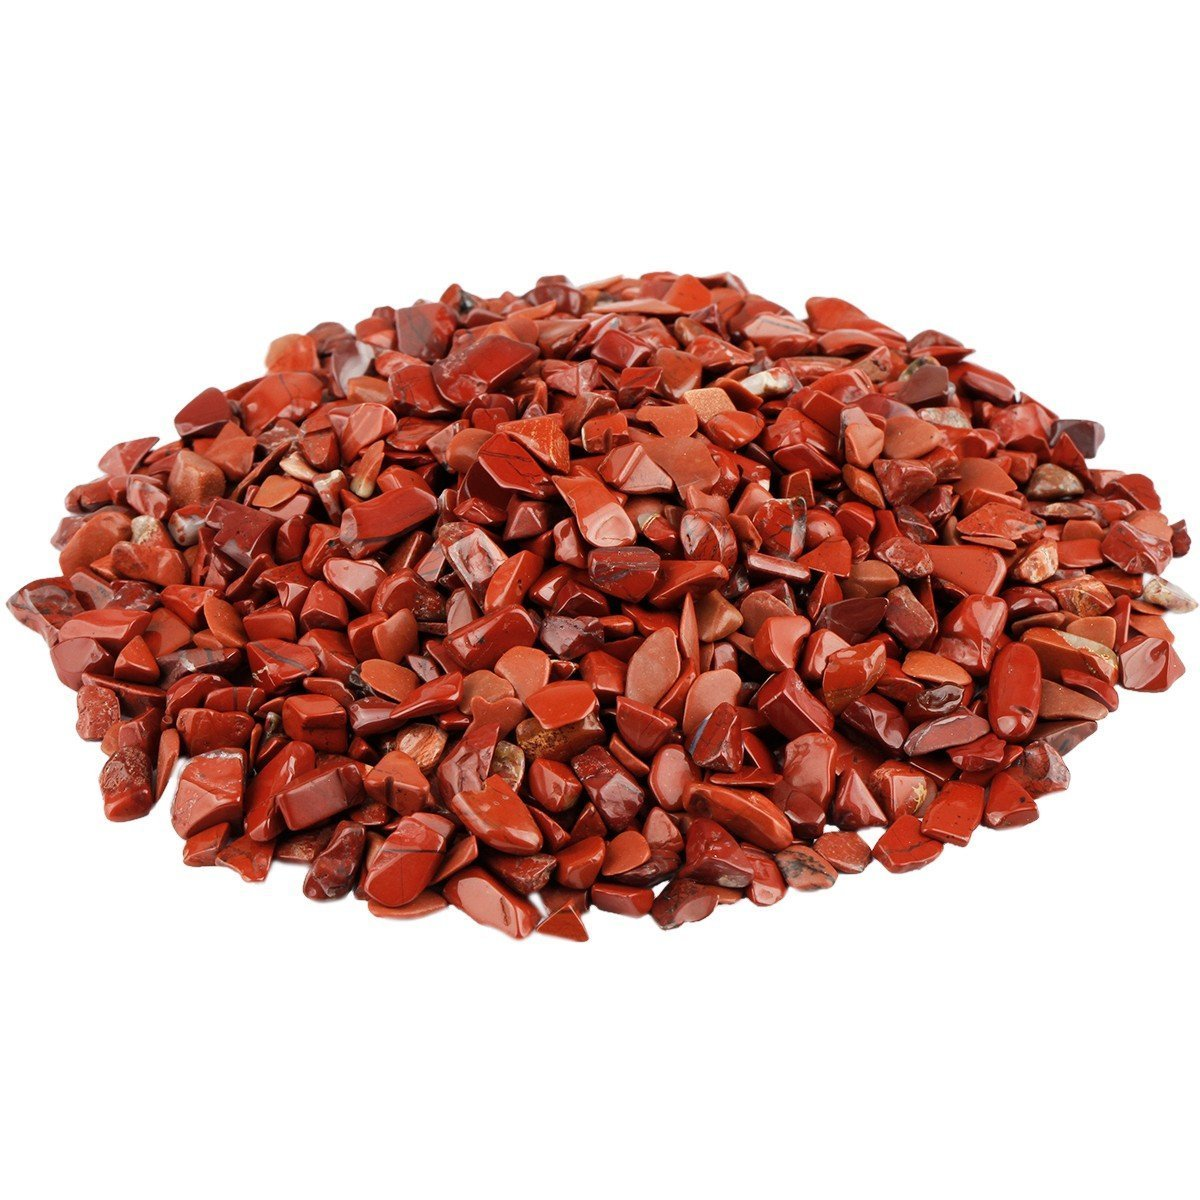 Zungtin 1 lb Red Jasper Small Tumbled Chips Crushed Stone Healing Reiki Crystal Jewelry Making Home Decoration